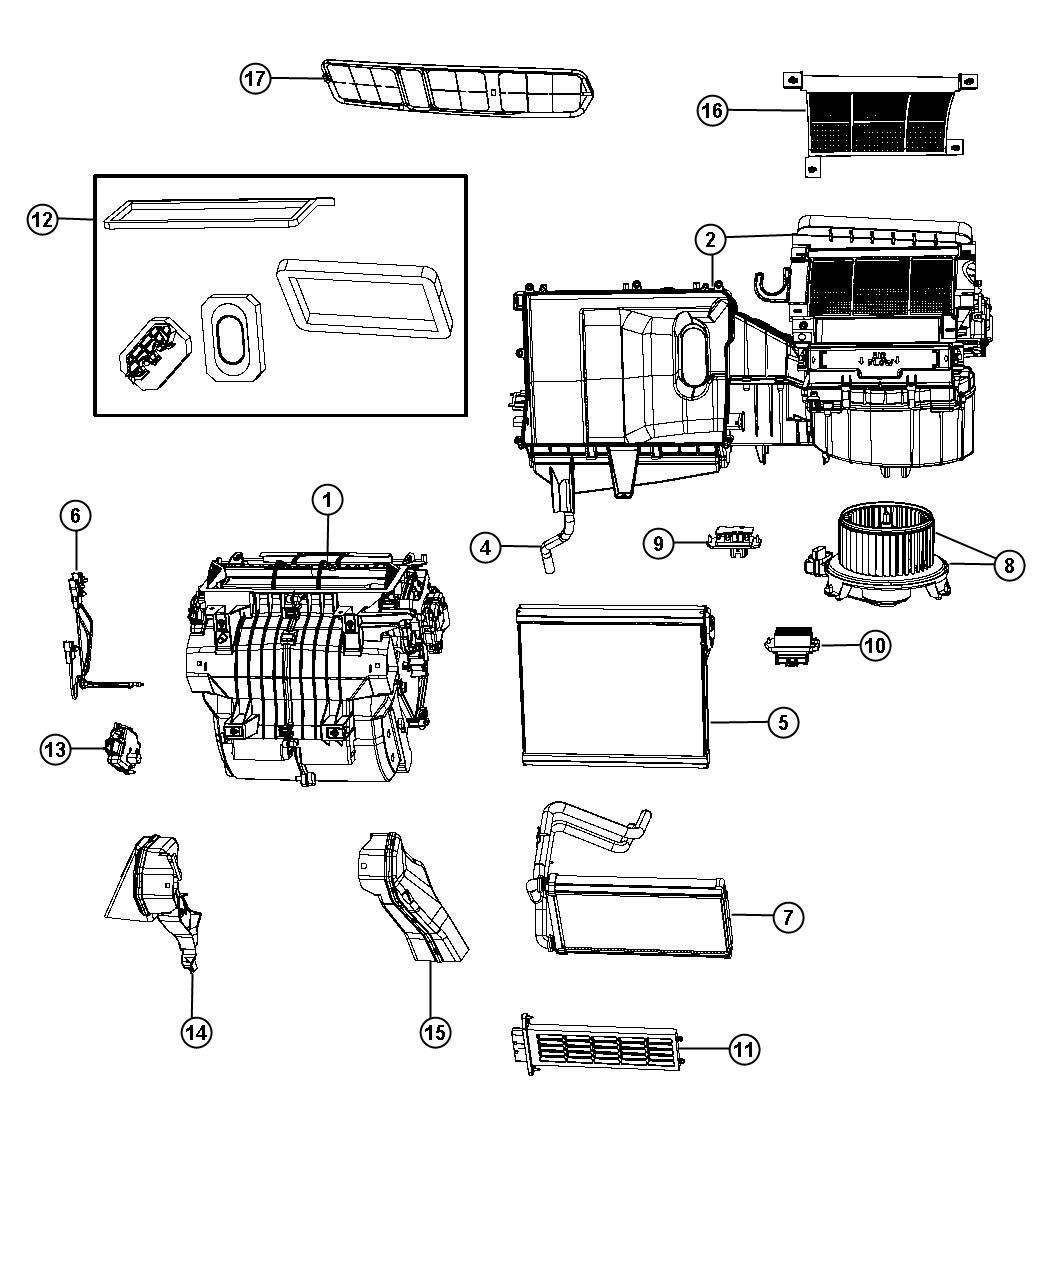 Chrysler Sebring Air Conditioning And Heater Unit